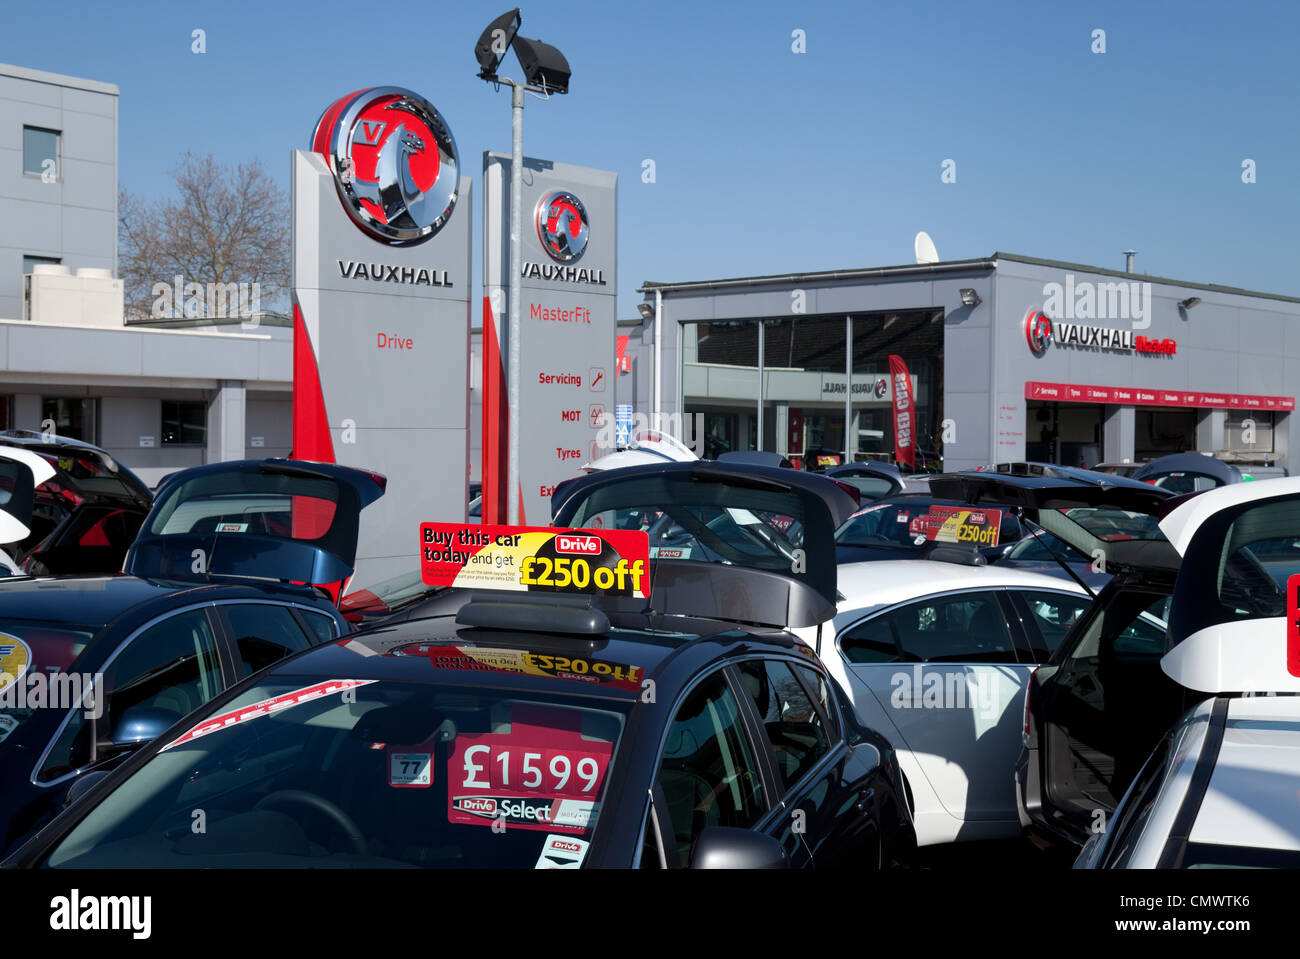 New cars for sale at a Vauxhall dealership, Bury St Edmunds Suffolk UK - Stock Image